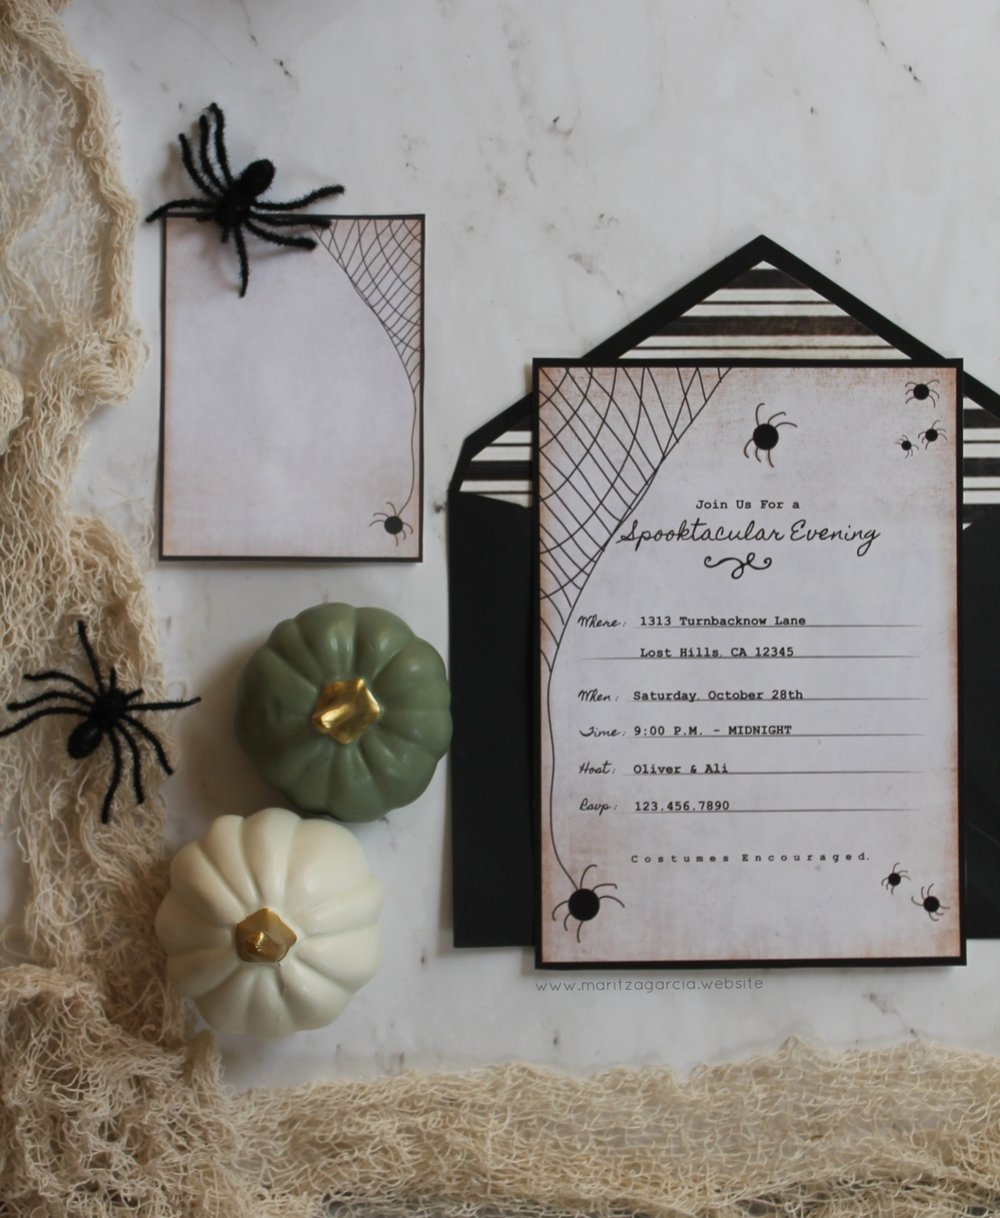 How To Create Halloween Invitation Using Your Silhouette Cameo | www.maritzagarcia.website